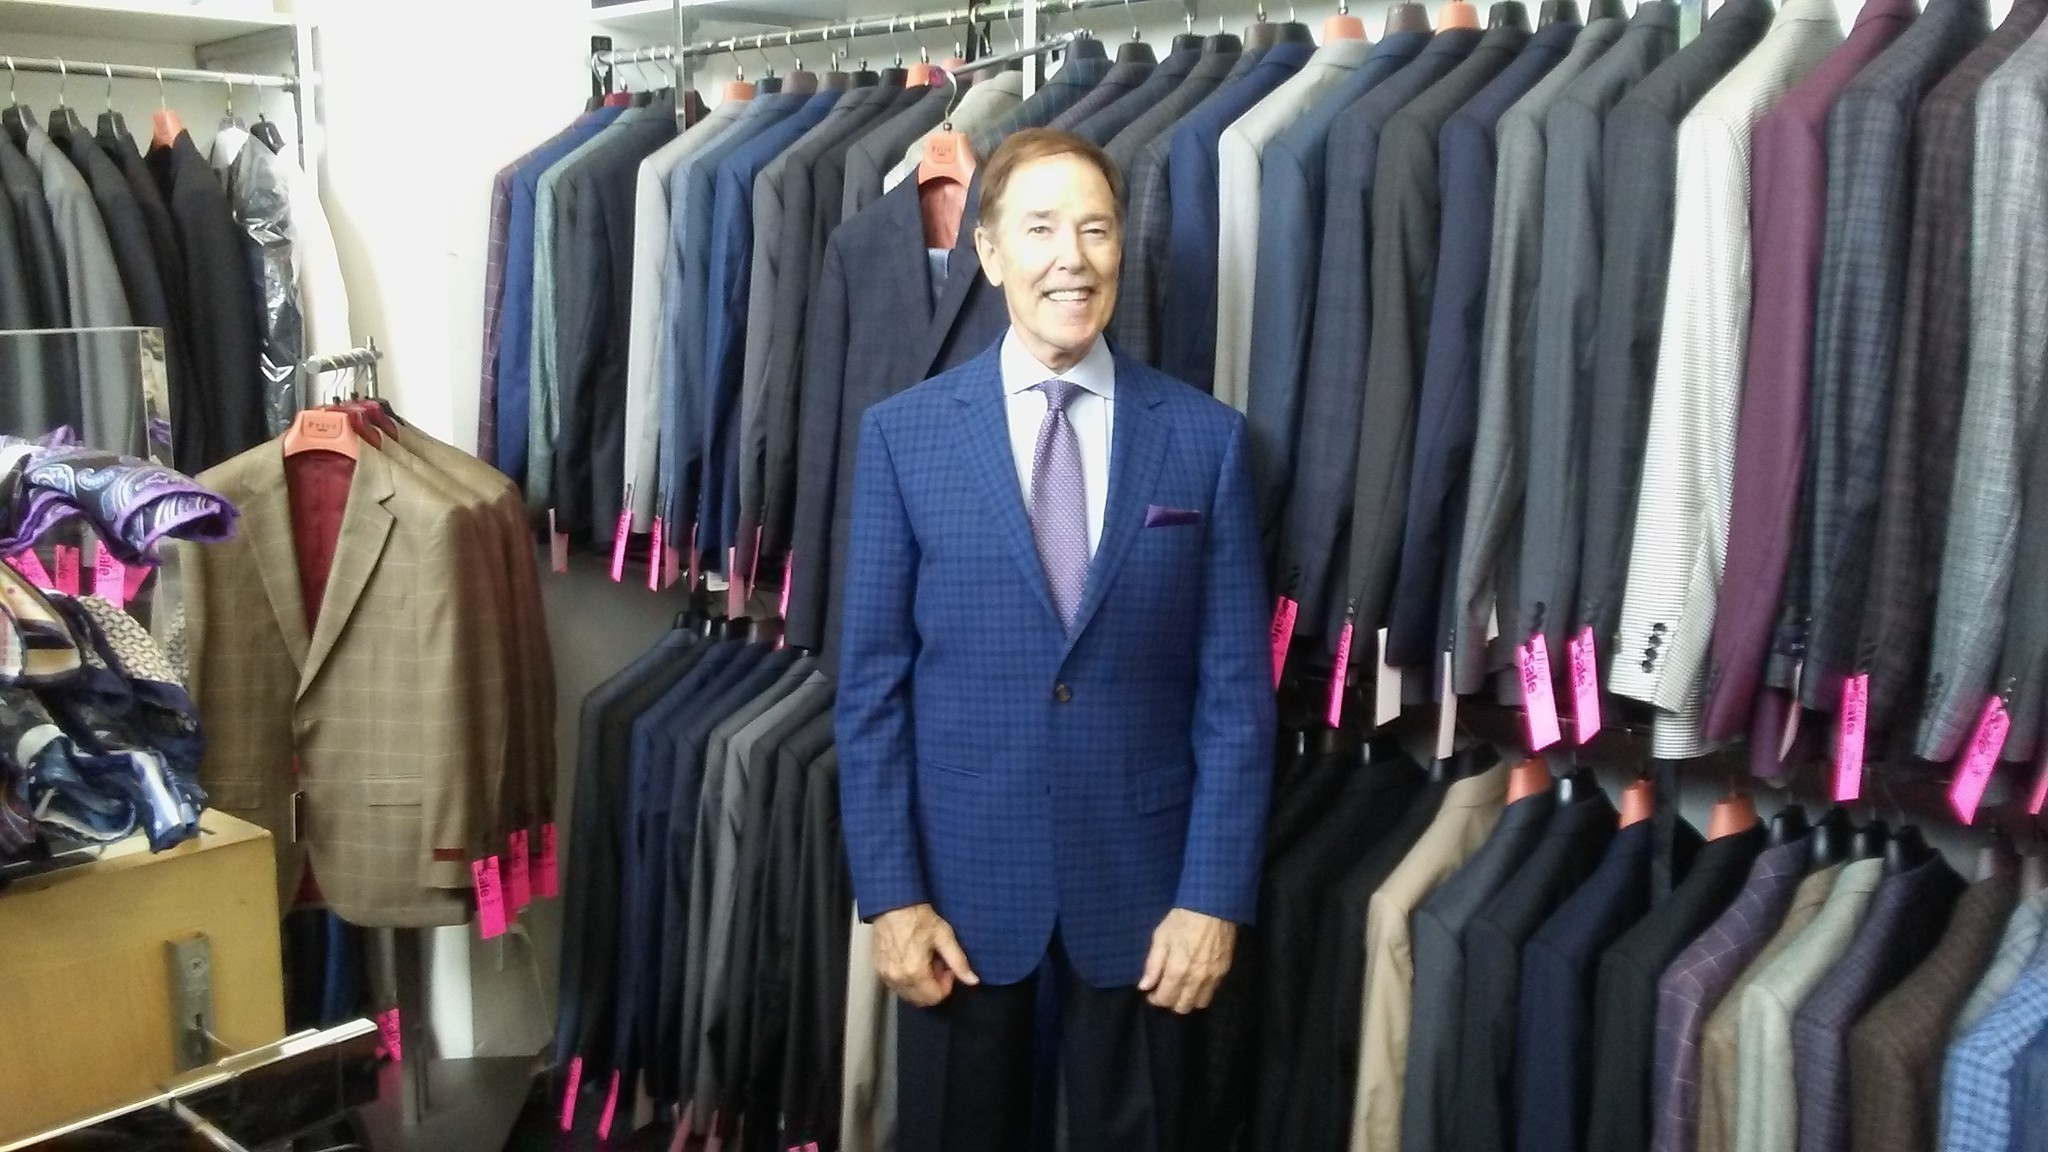 Suiting himself: Clothes have made this man - The San Diego Union ...